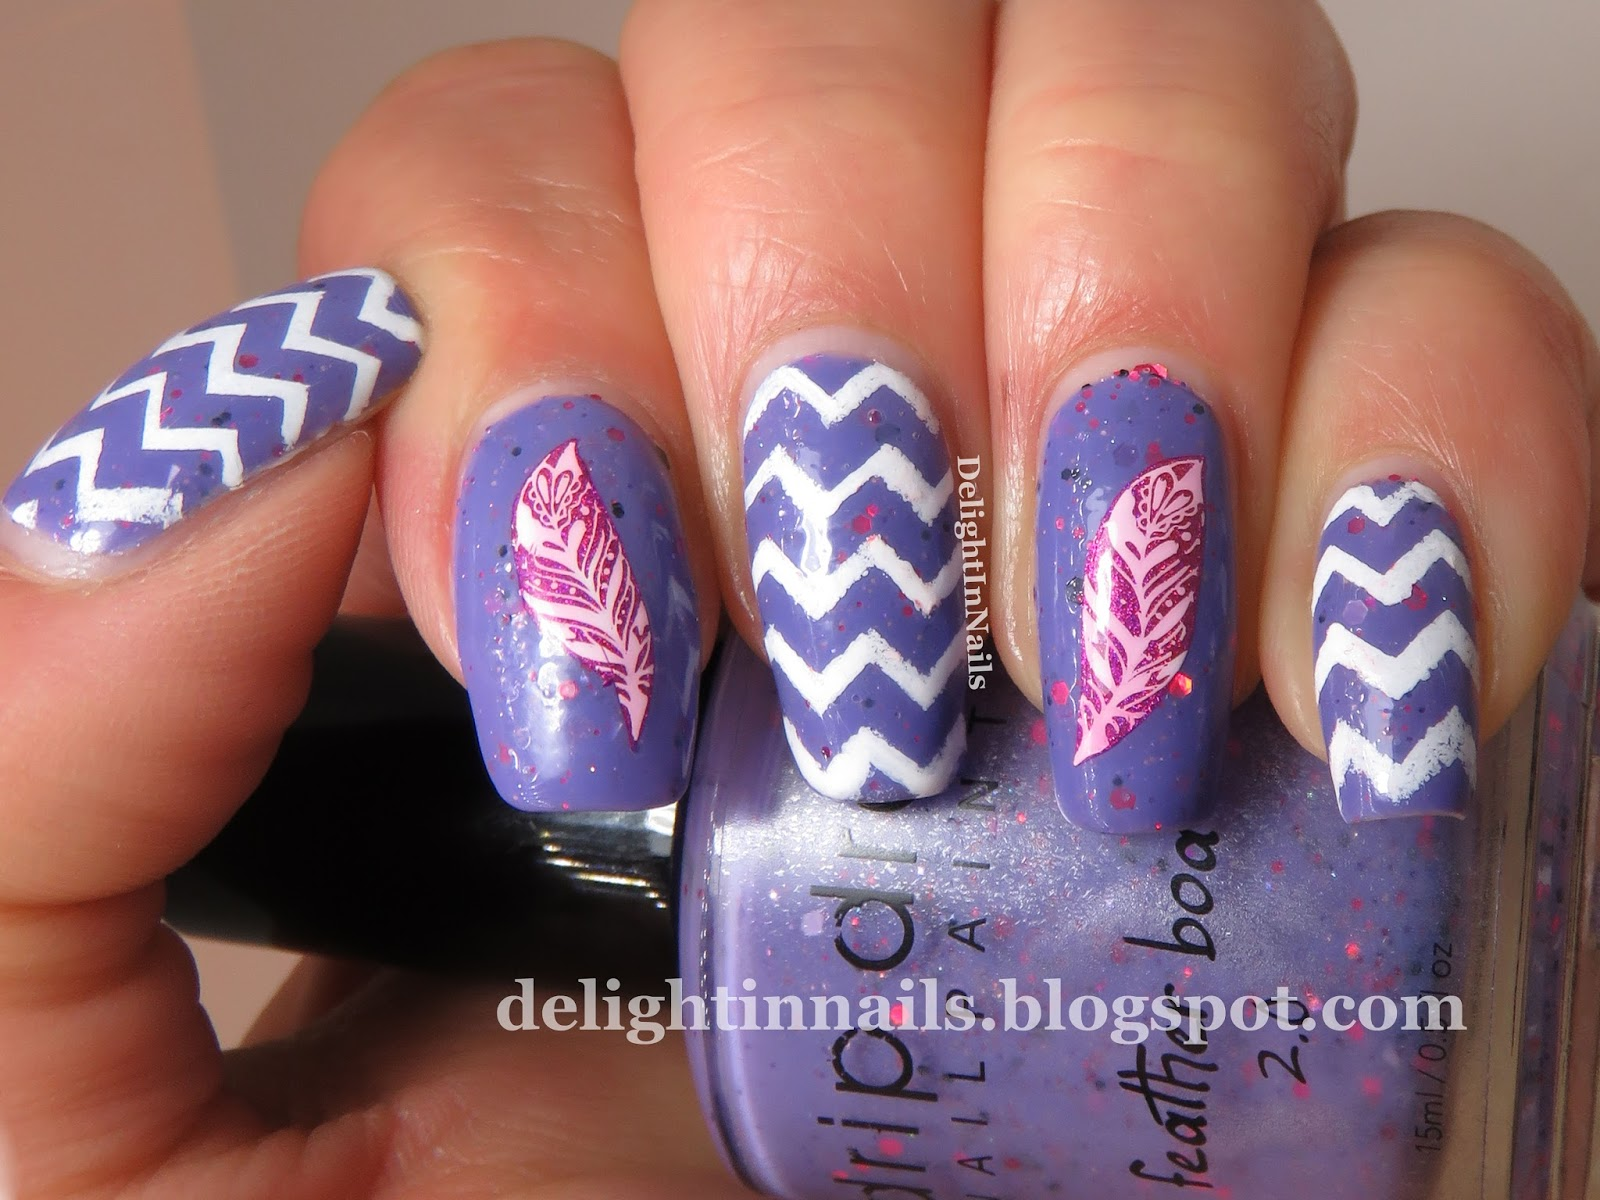 Delight In Nails Great Nail Art Ideas Hippiesfestivals The